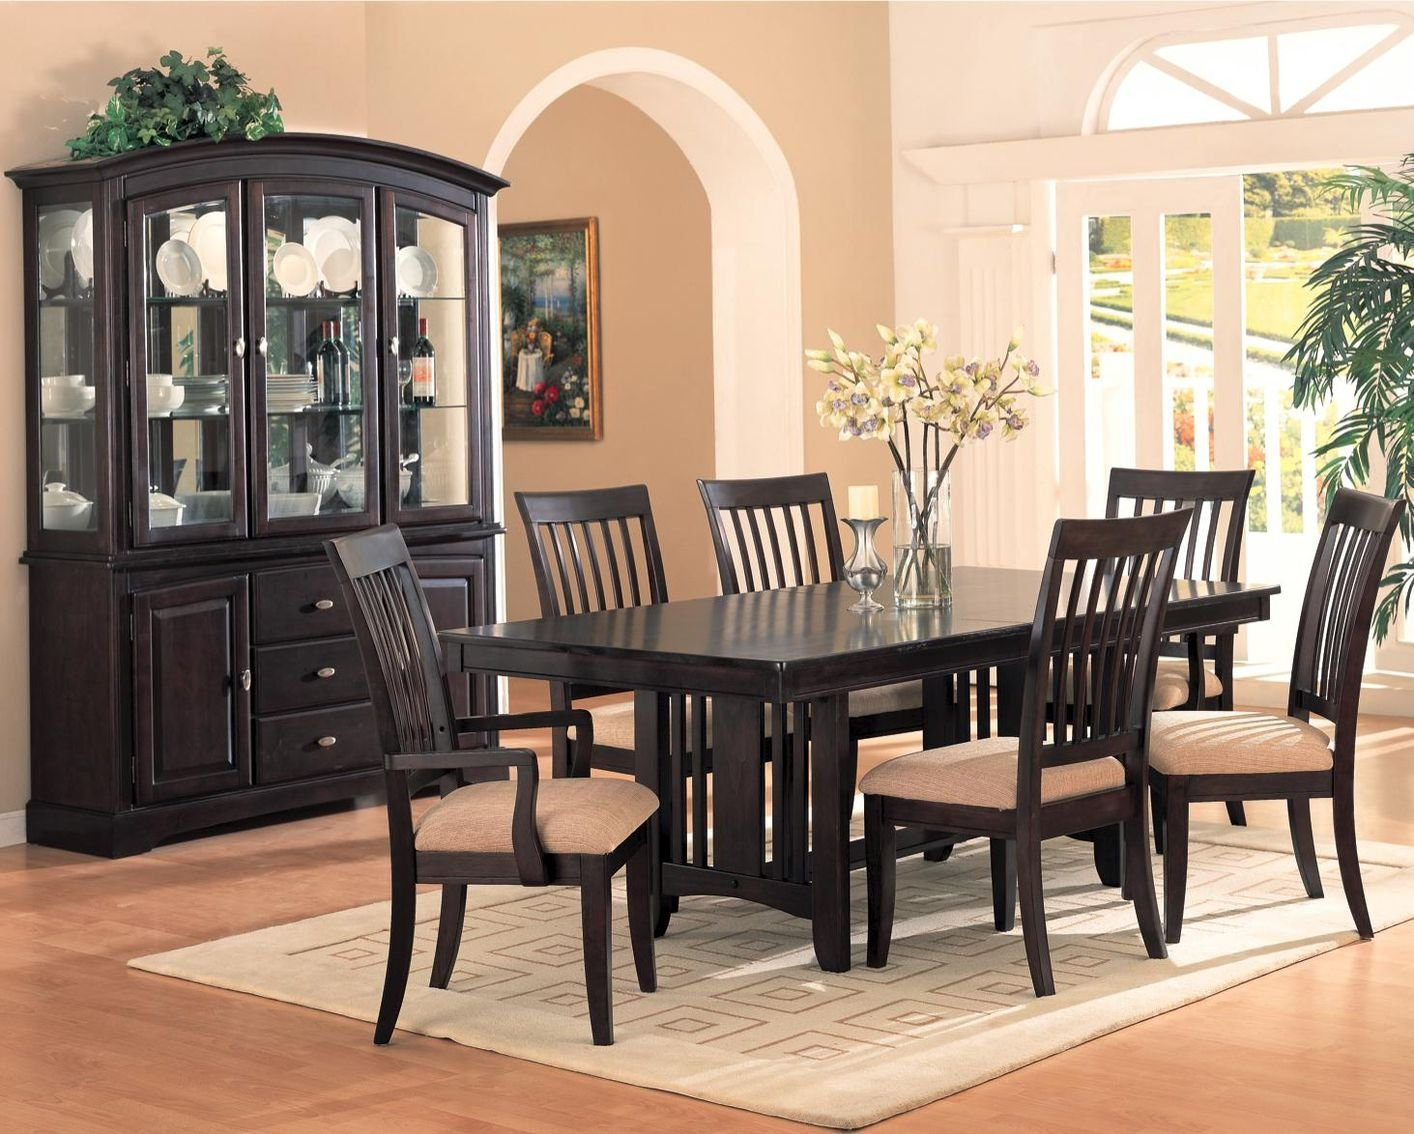 Dining Room Side Table Buffet ~ kwitter.us